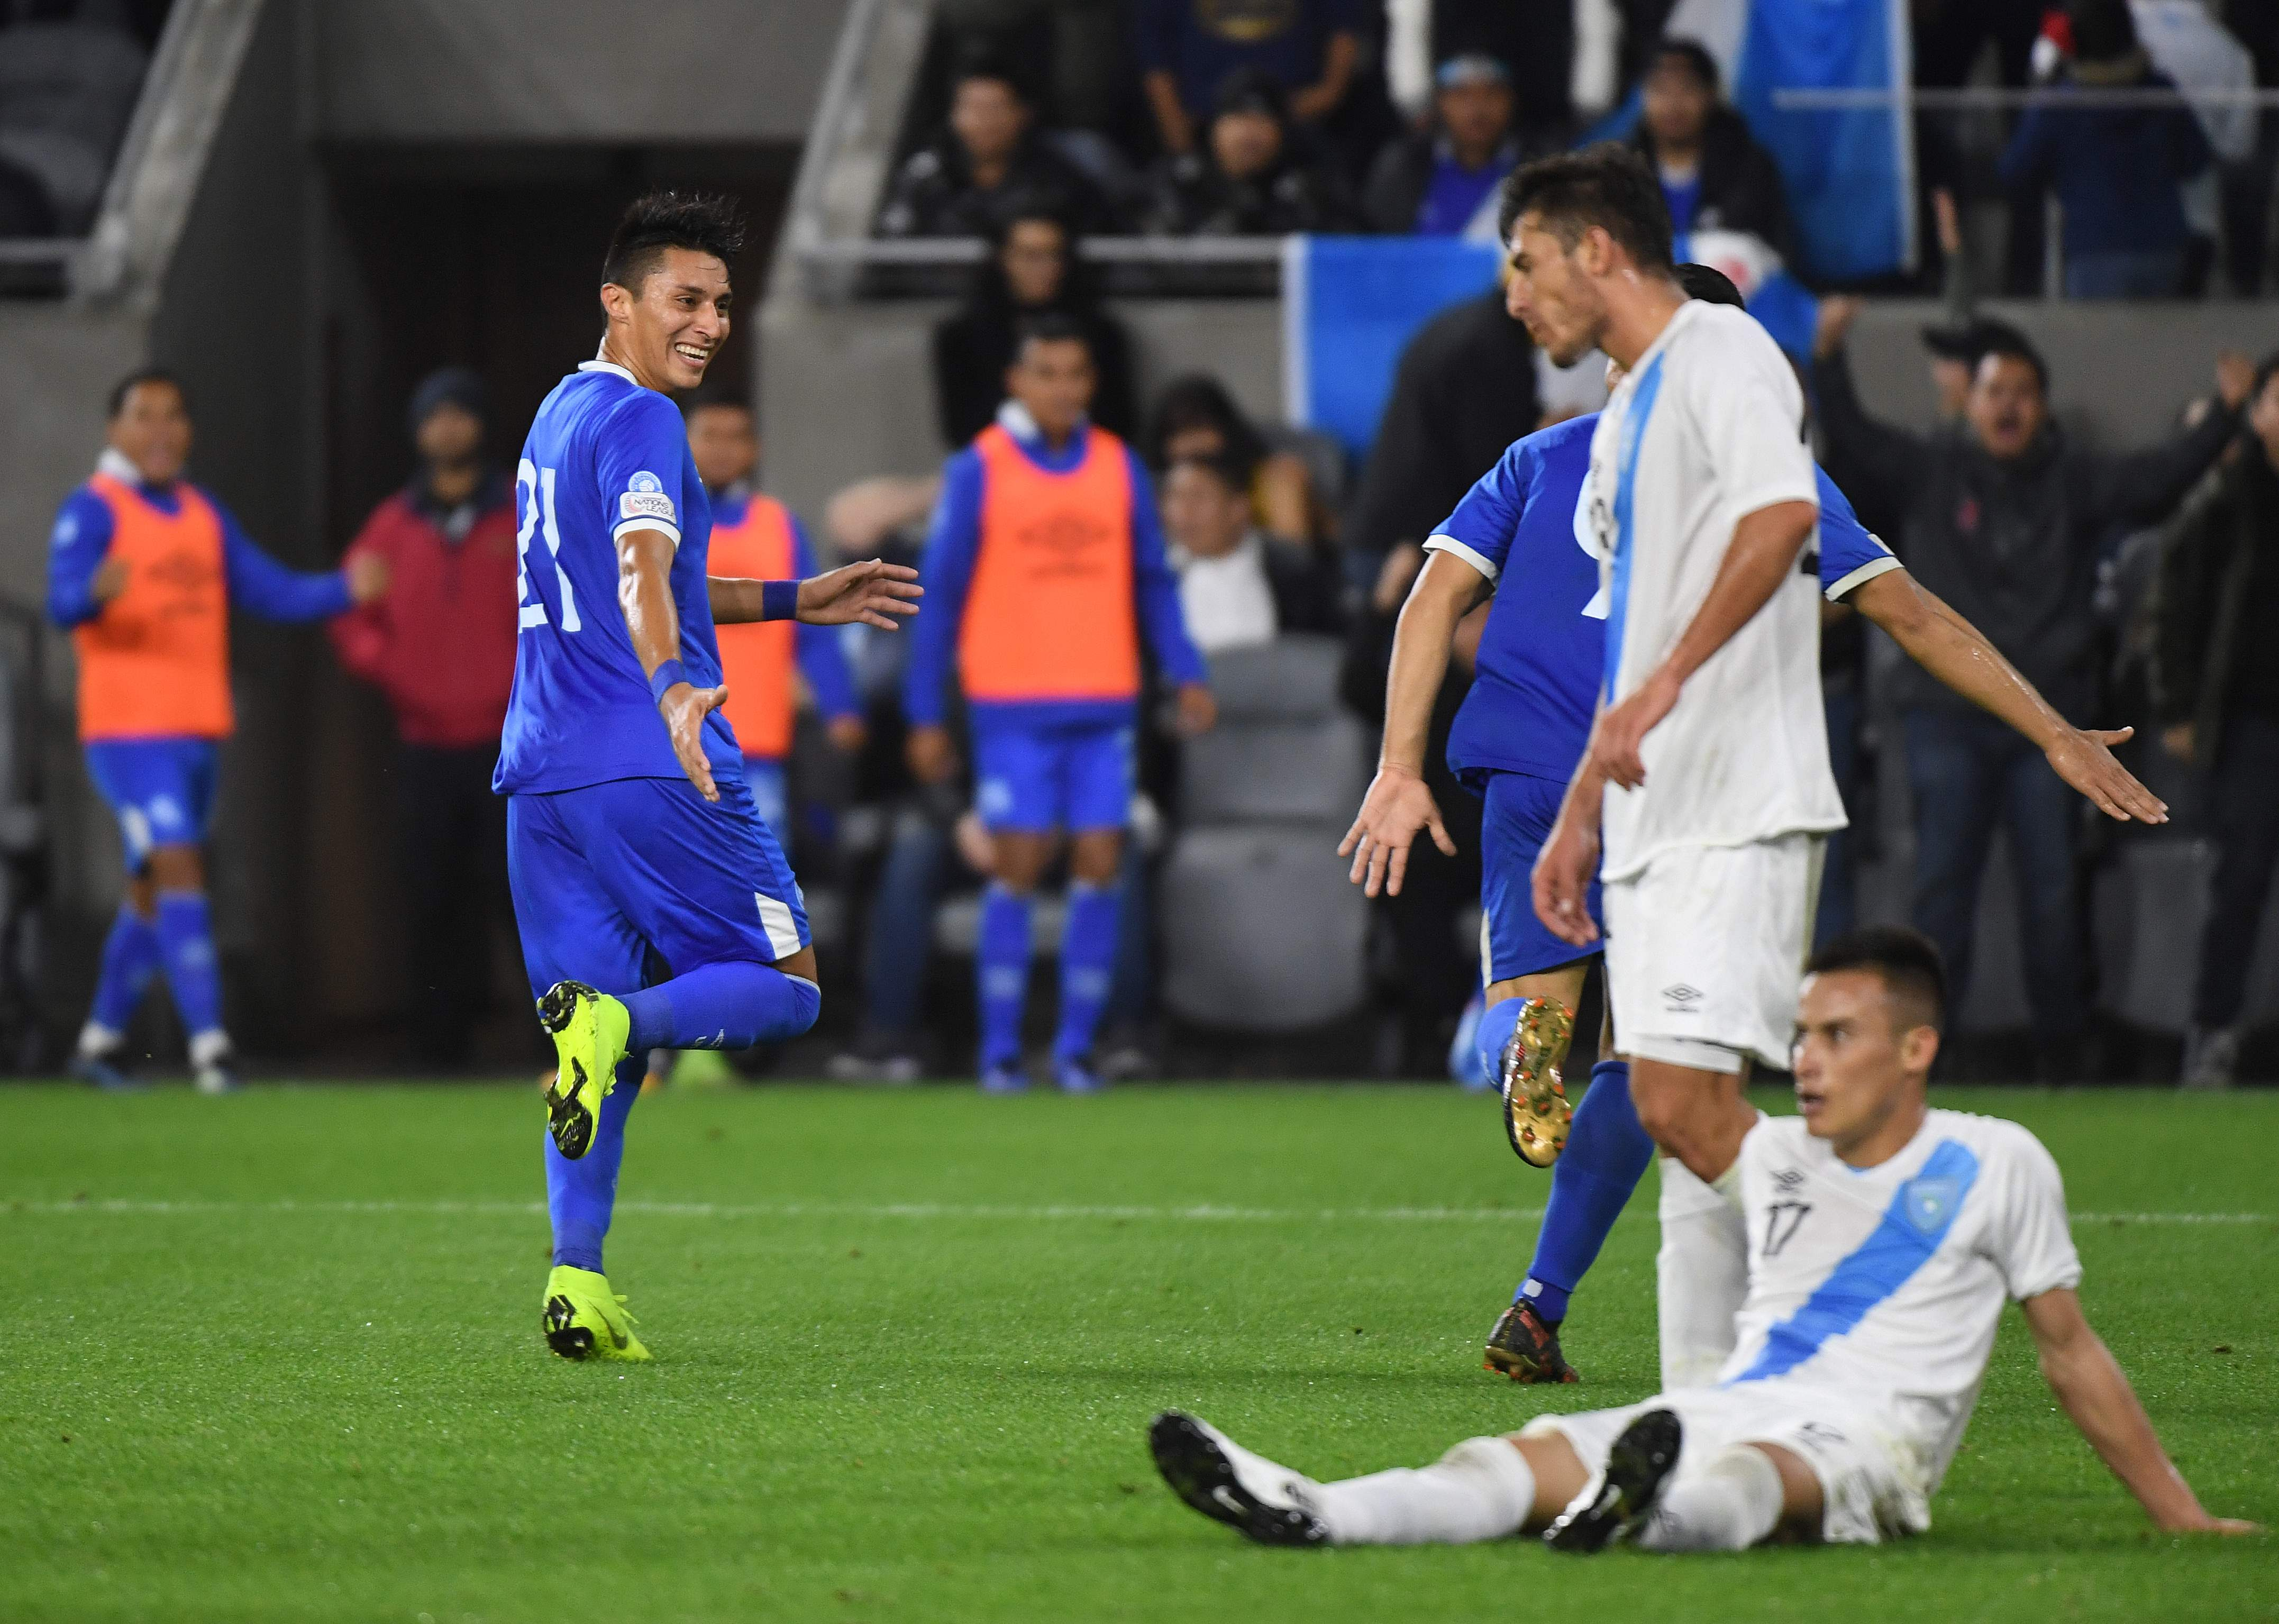 Bryan Tamacas of El Salvador (L) celebrates after scoring against Guatemala during their football friendly match at the Banc Of California Stadium in Los Angeles on March 6, 2019. - El Salvador won 3-1. (Photo by Mark RALSTON / AFP)